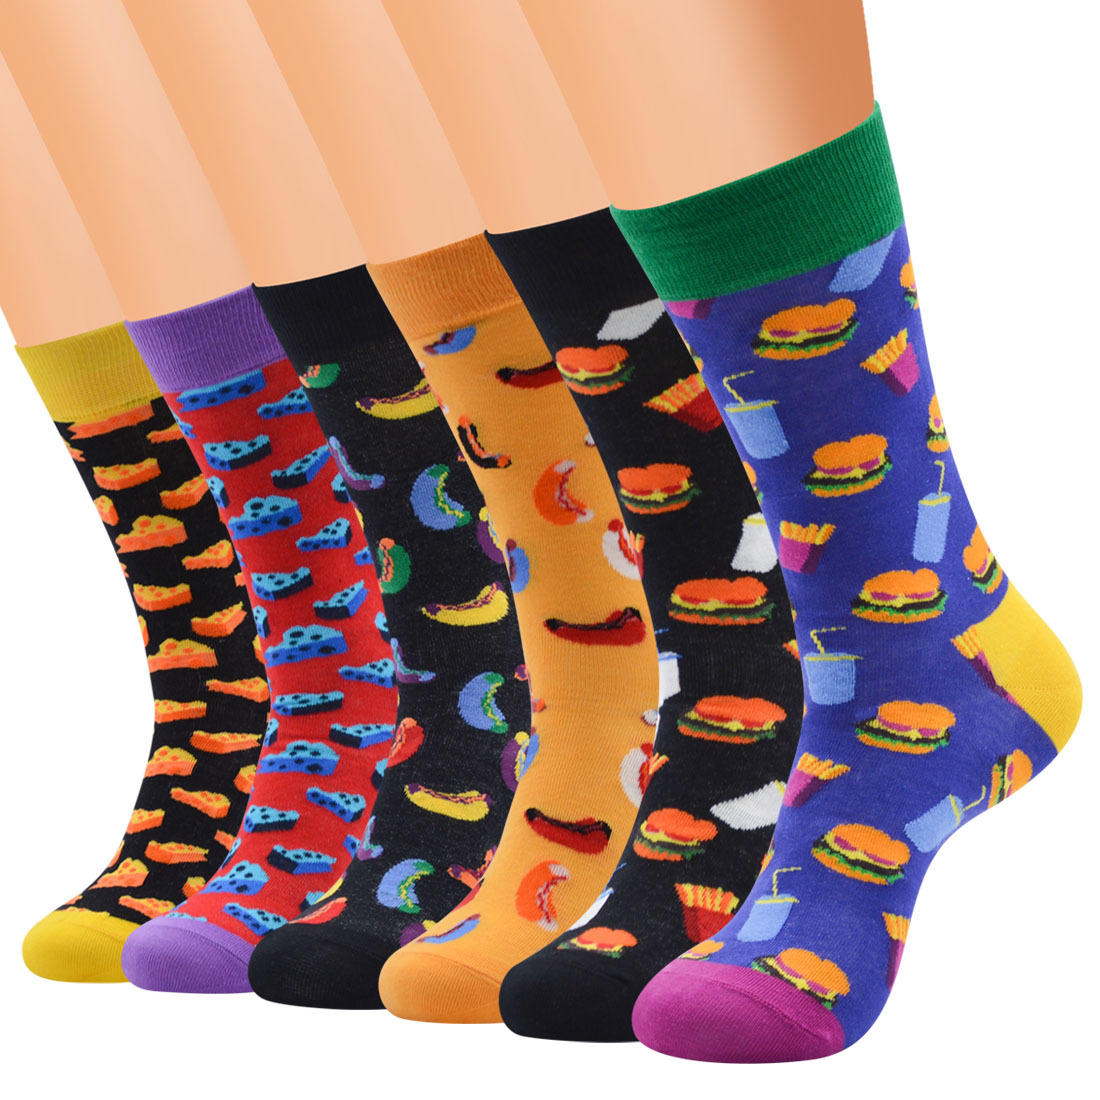 HUAYA 12 Pairs / A Dozen Fun Patterns Male Cotton Socks Cheese Burger Hot Dog Cola Chips Business Breathable Ins Stockings